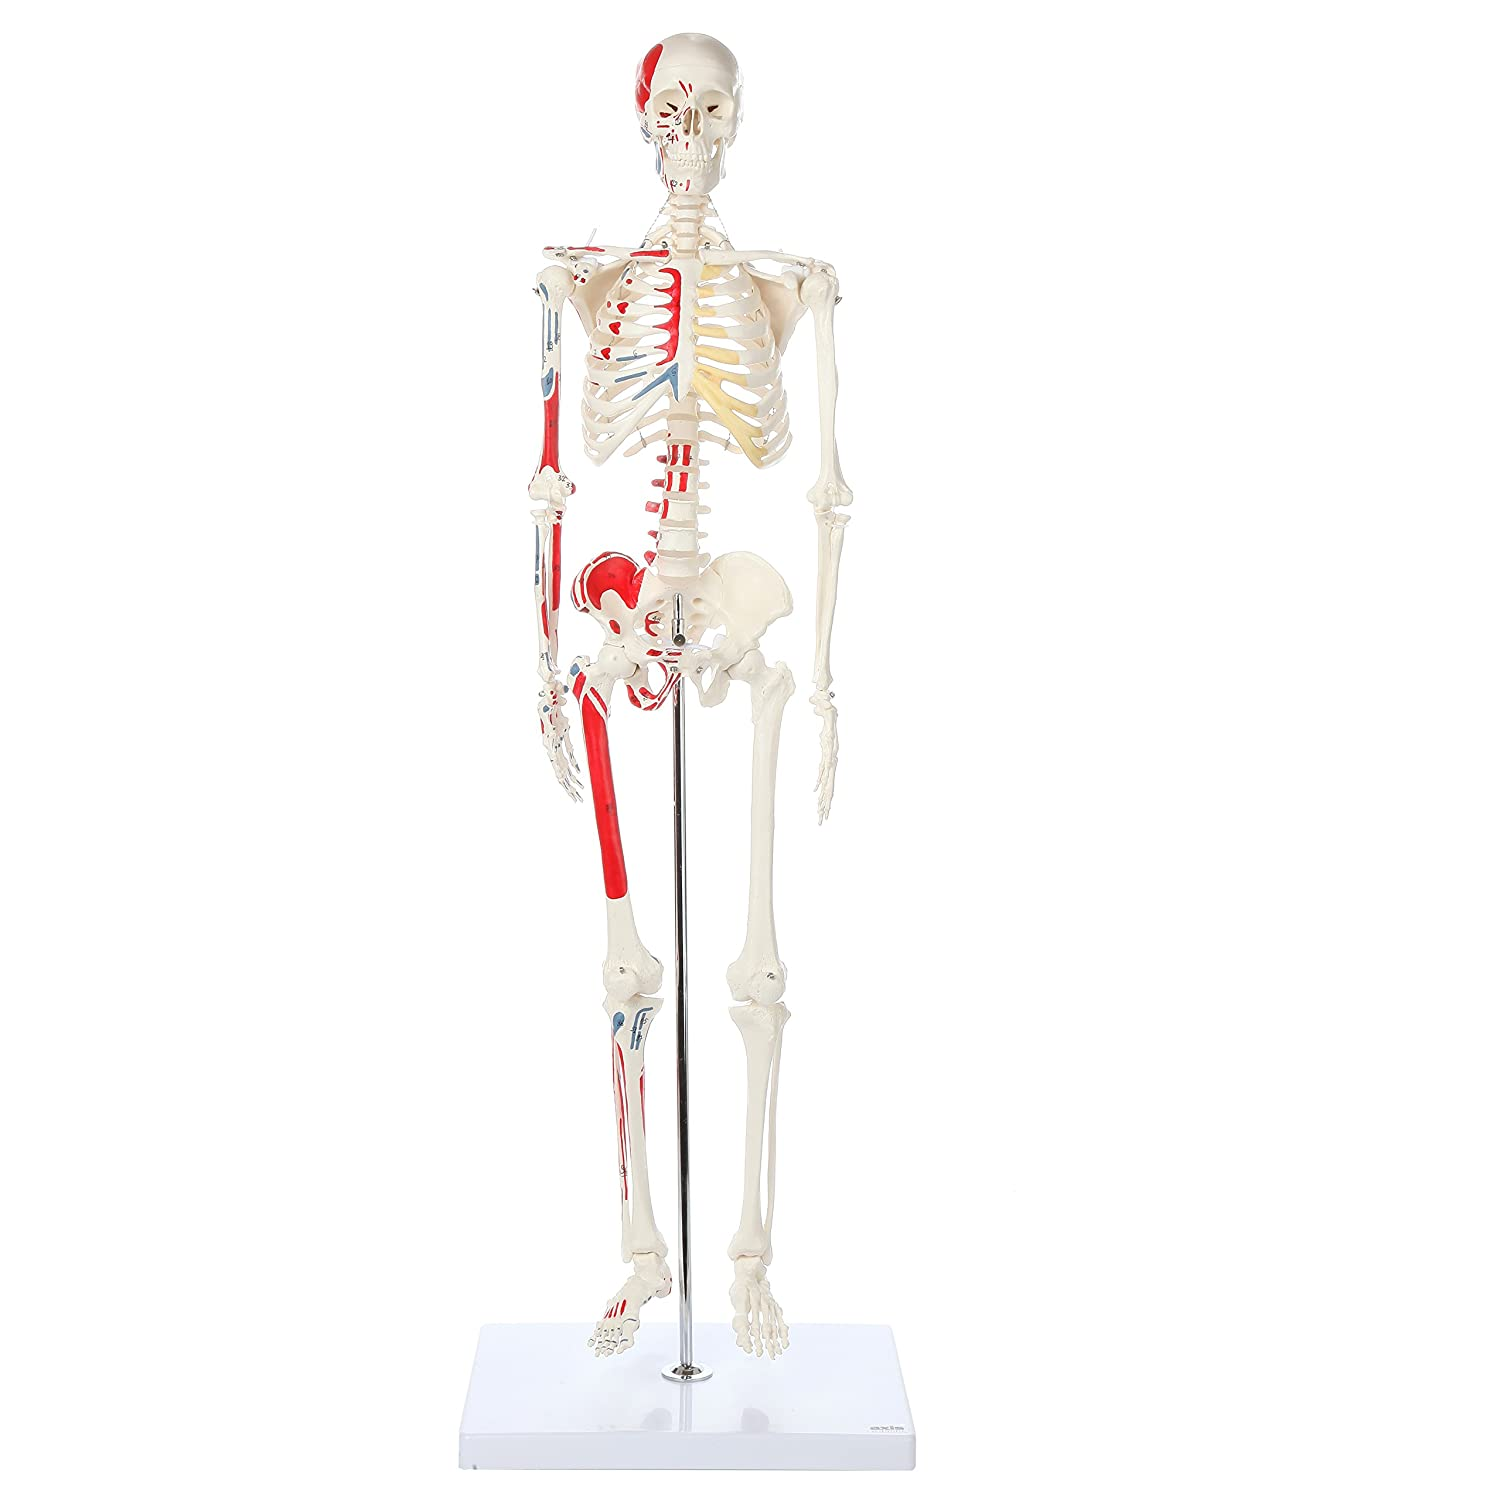 Axis Scientific Mini Human Painted Skeleton Model with Metal Stand   31 Inches Tall with Removable Arms and Legs is Easy to Assemble   Includes Detailed Product Manual   3 Year Warranty